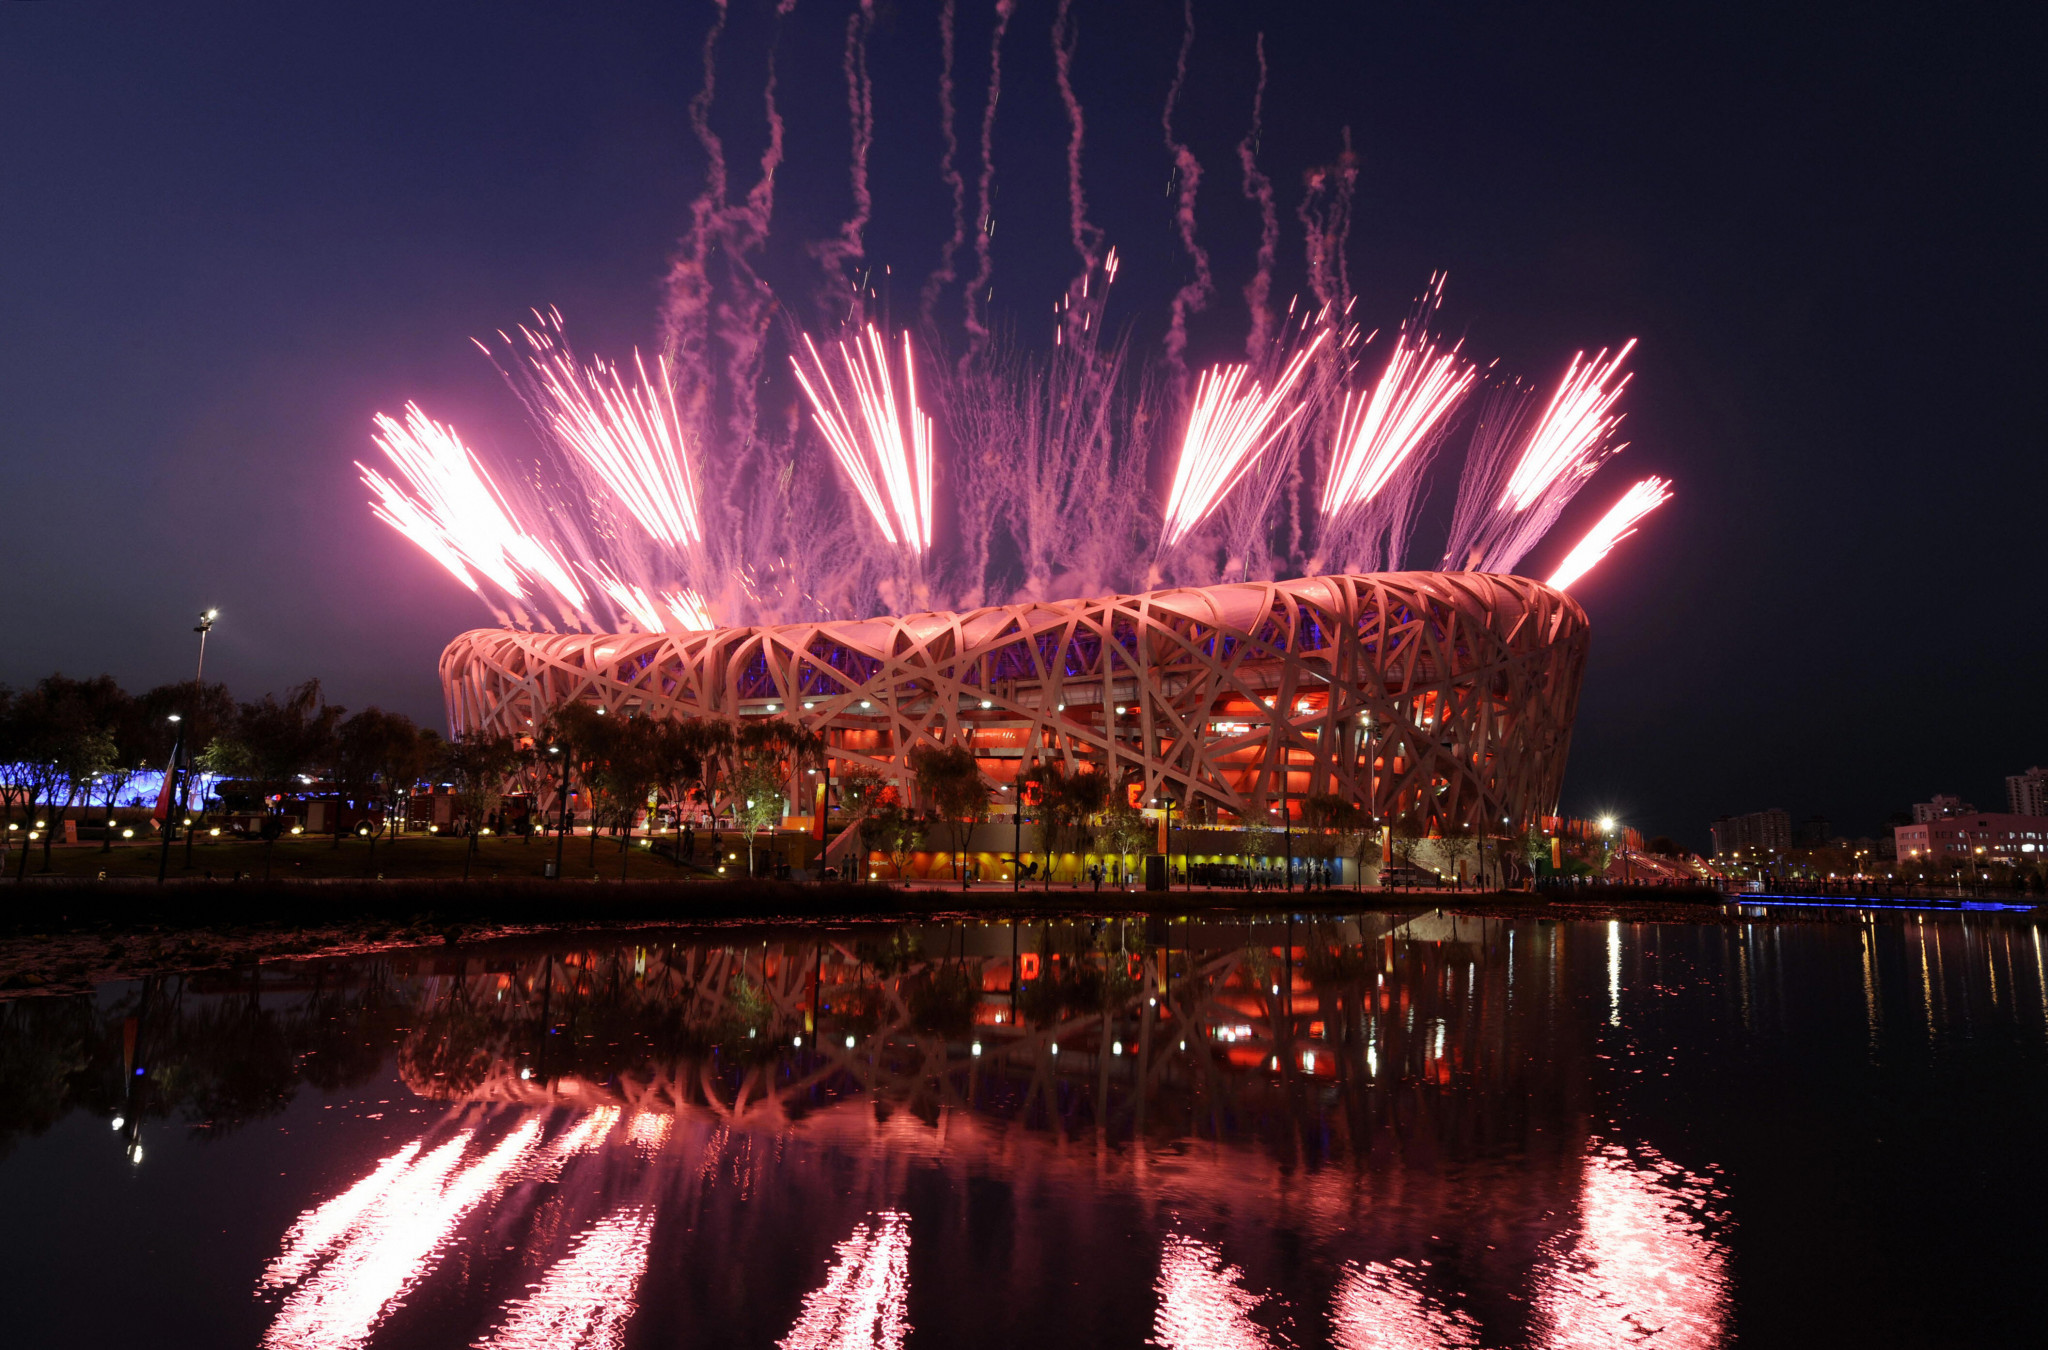 Olympic Expo to mark 10th anniversary of Beijing 2008 while looking ahead to Beijing 2022